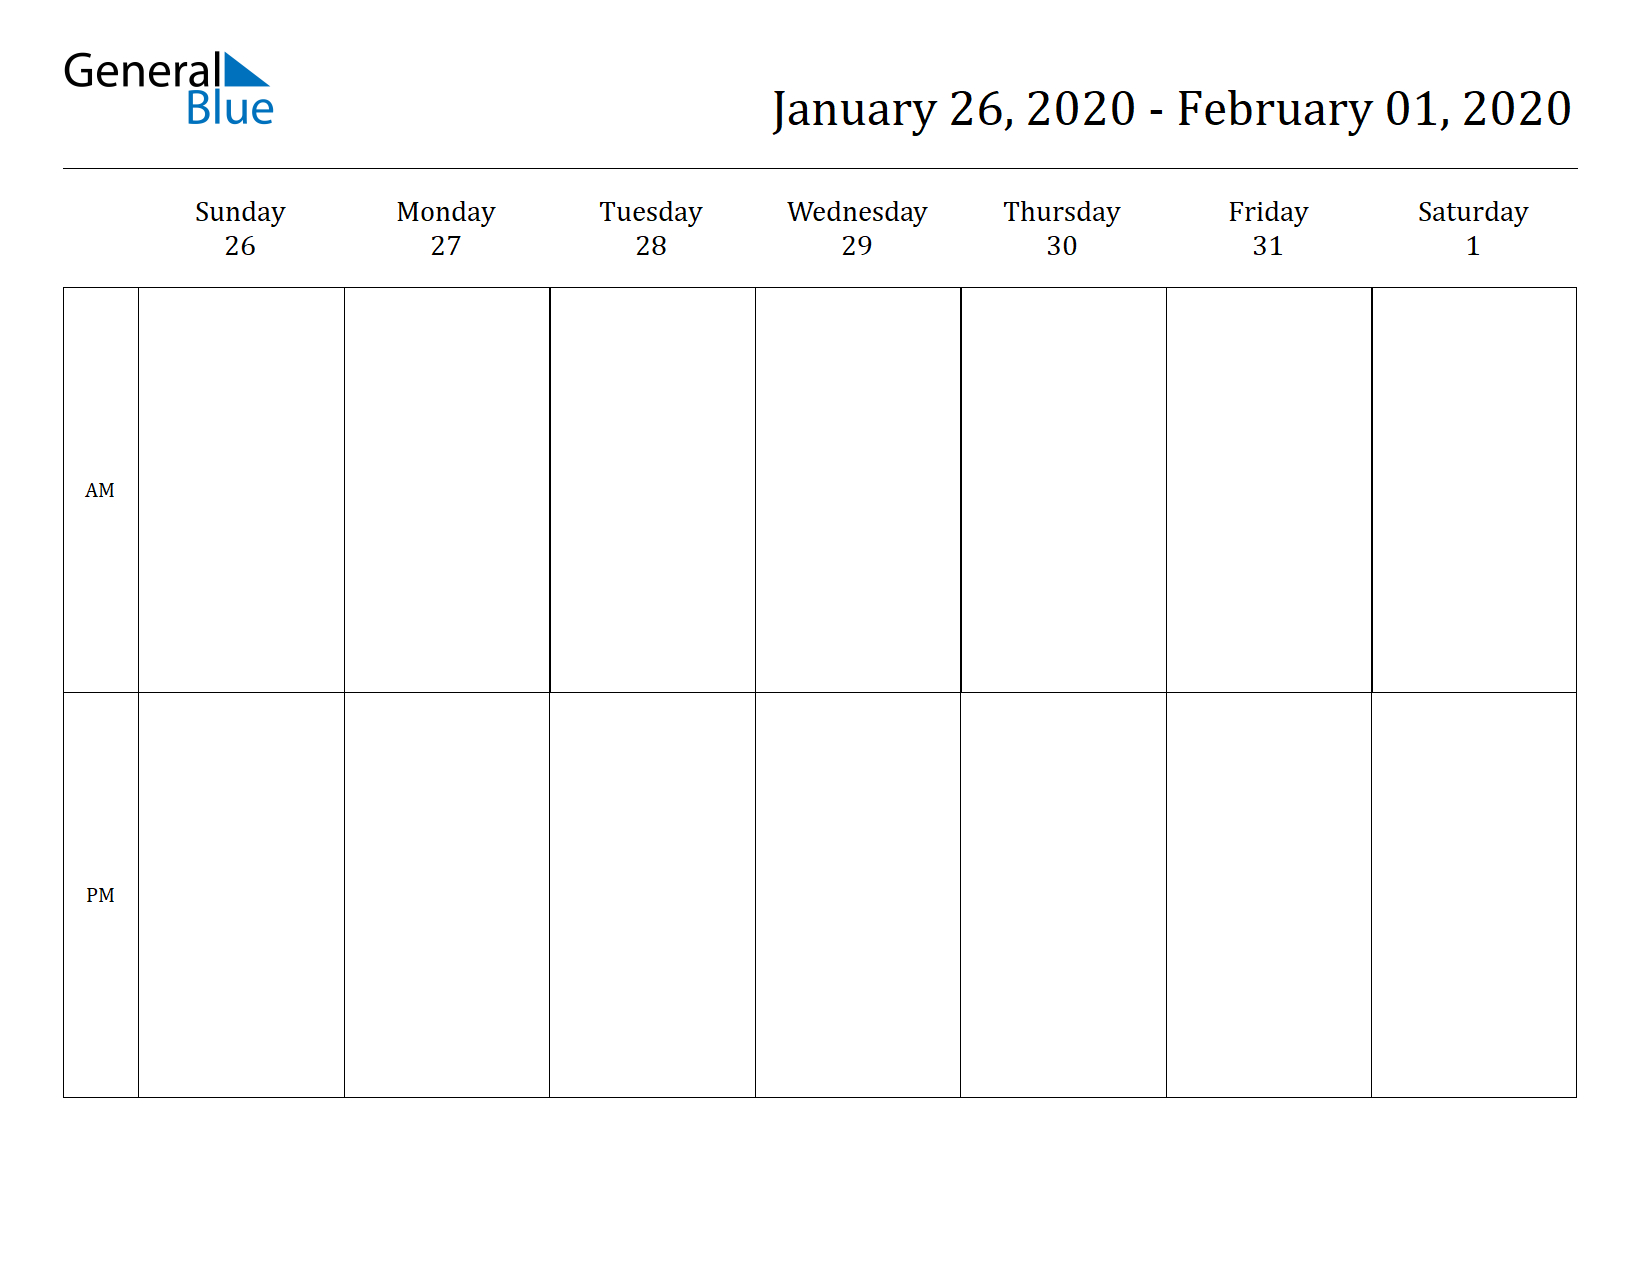 Free Printable Weekly Calendars For 2020 In Pdf Document